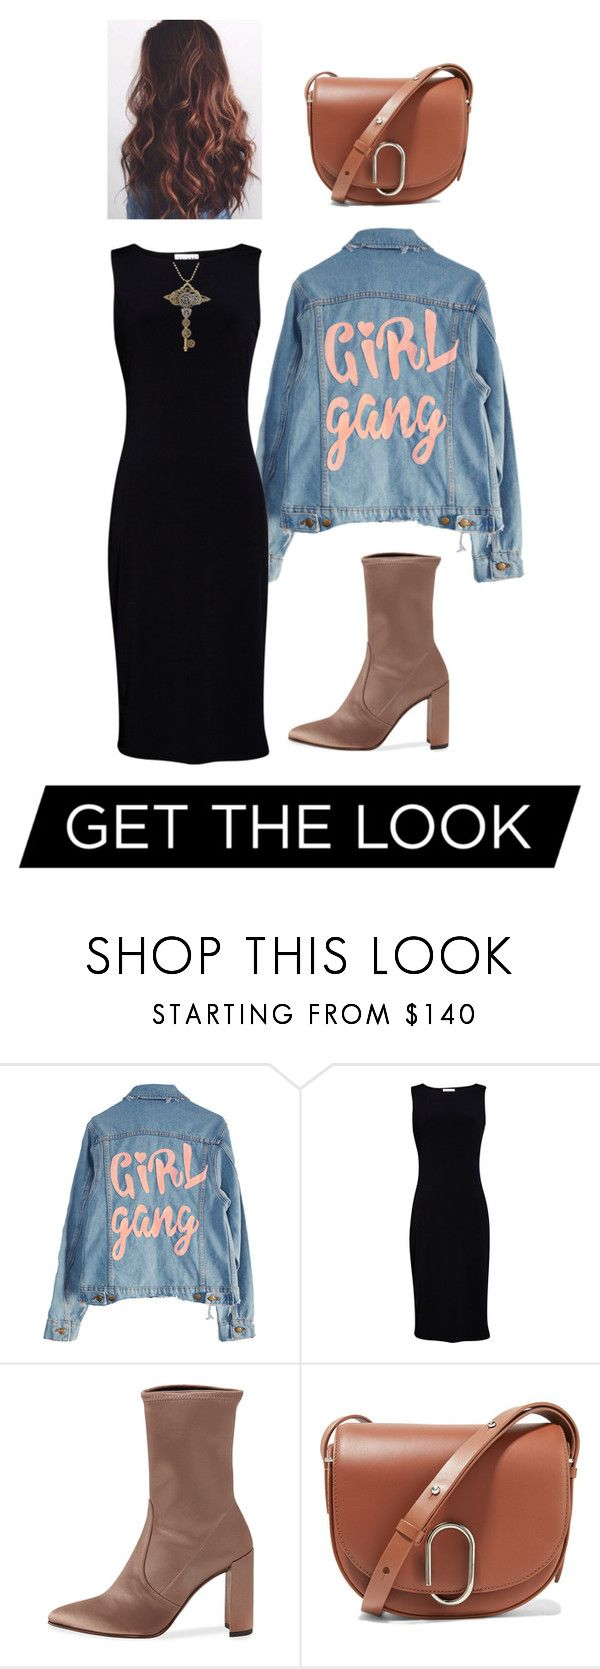 """#56"" by gitagiza ❤ liked on Polyvore featuring Velvet by Graham & Spencer, Stuart Weitzman and 3.1 Phillip Lim"